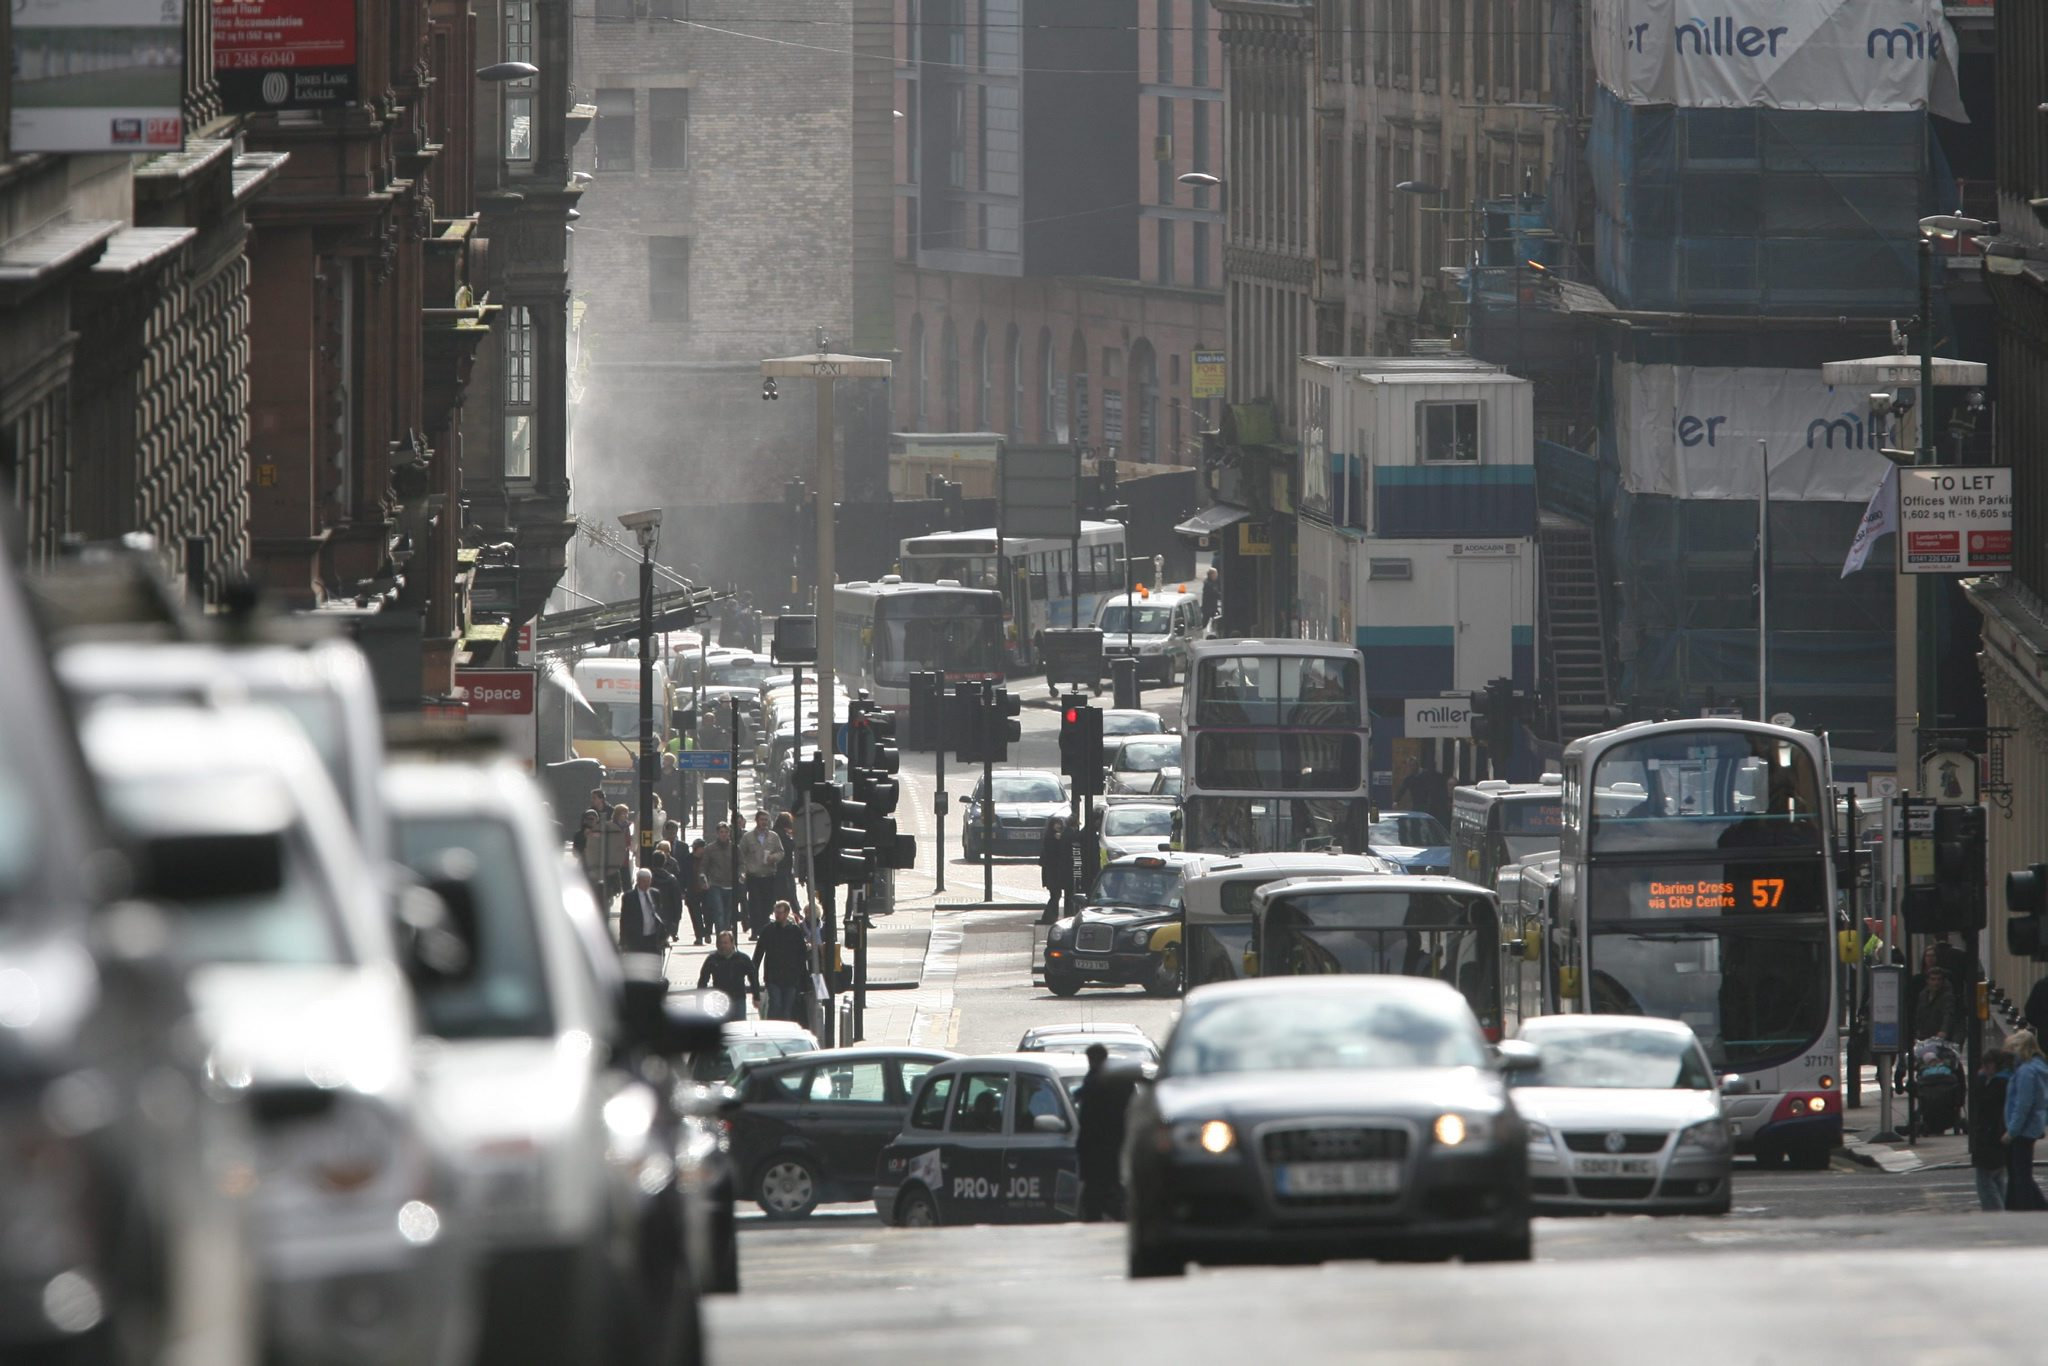 Glasgow's Hope Street named most polluted in Scotland as figures show country is 'stalling' on air quality